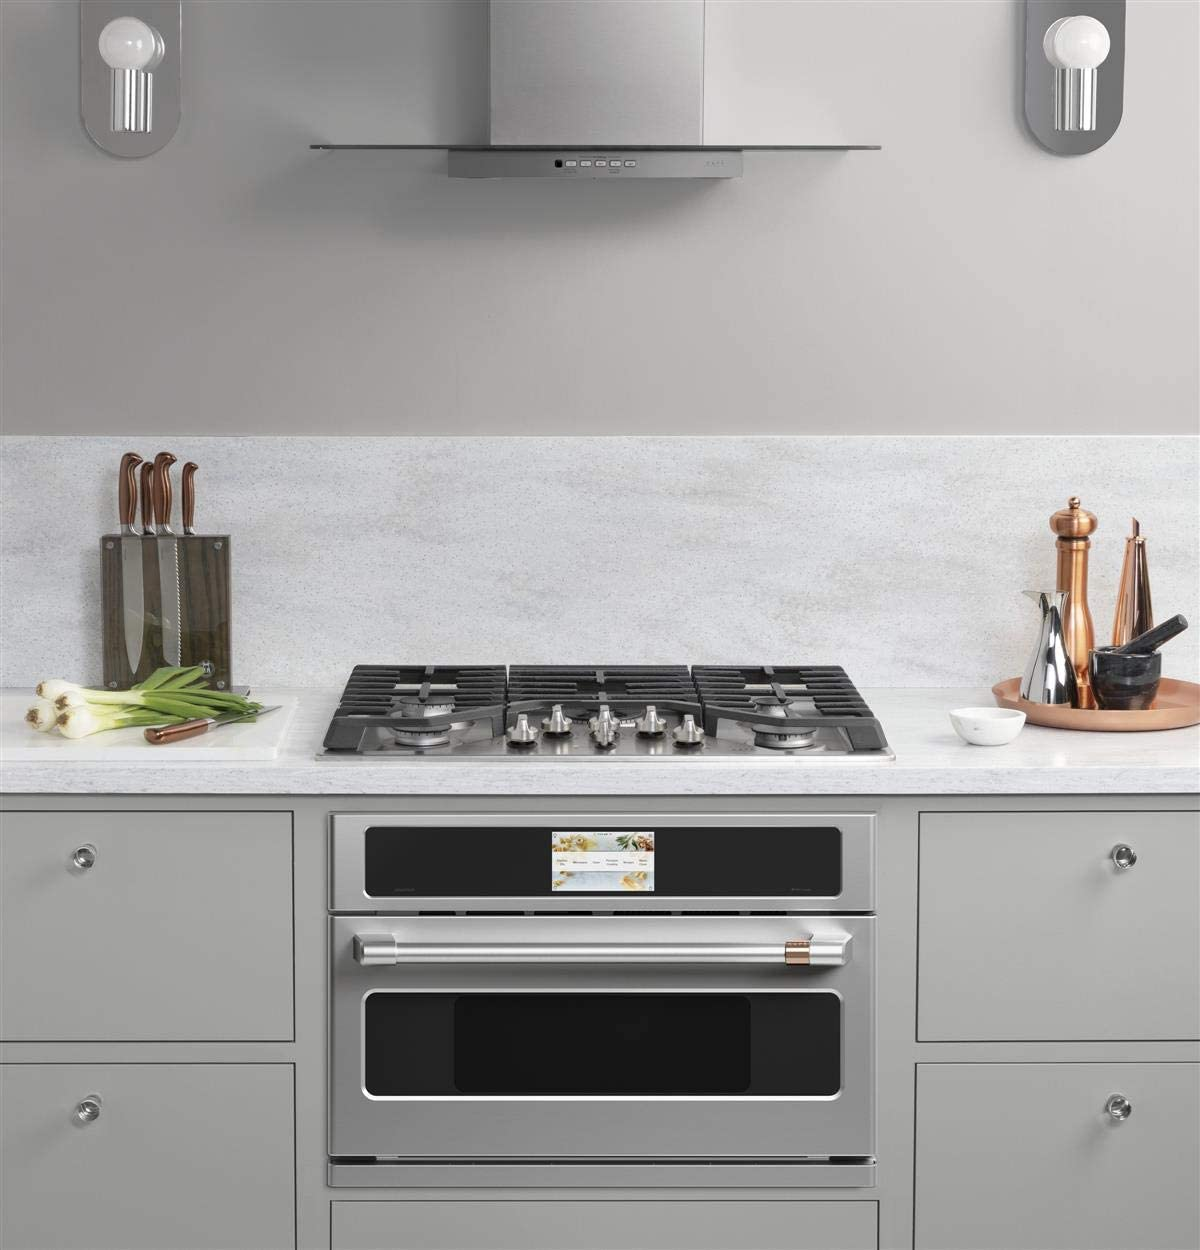 CAFE 30in CSB913P2NS1 SMART FIVE IN ONE SINGLE OVEN WITH 120V ...